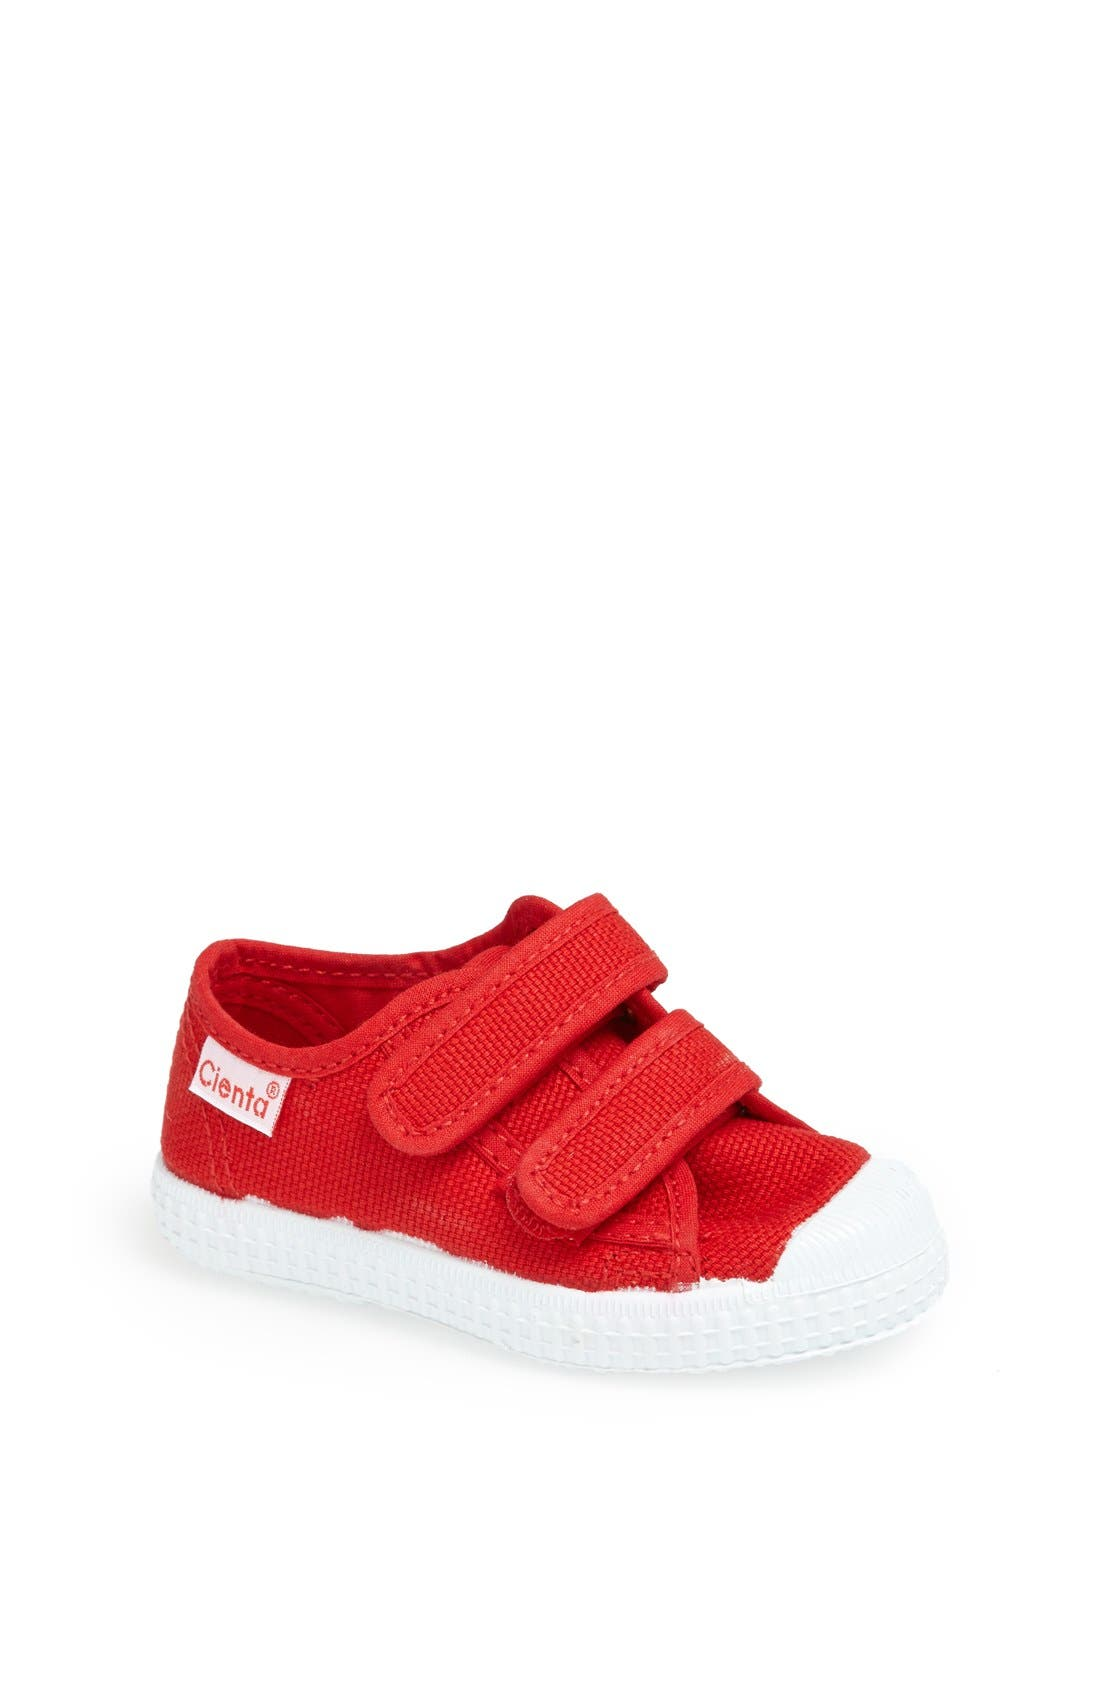 Canvas Sneaker,                         Main,                         color, Red